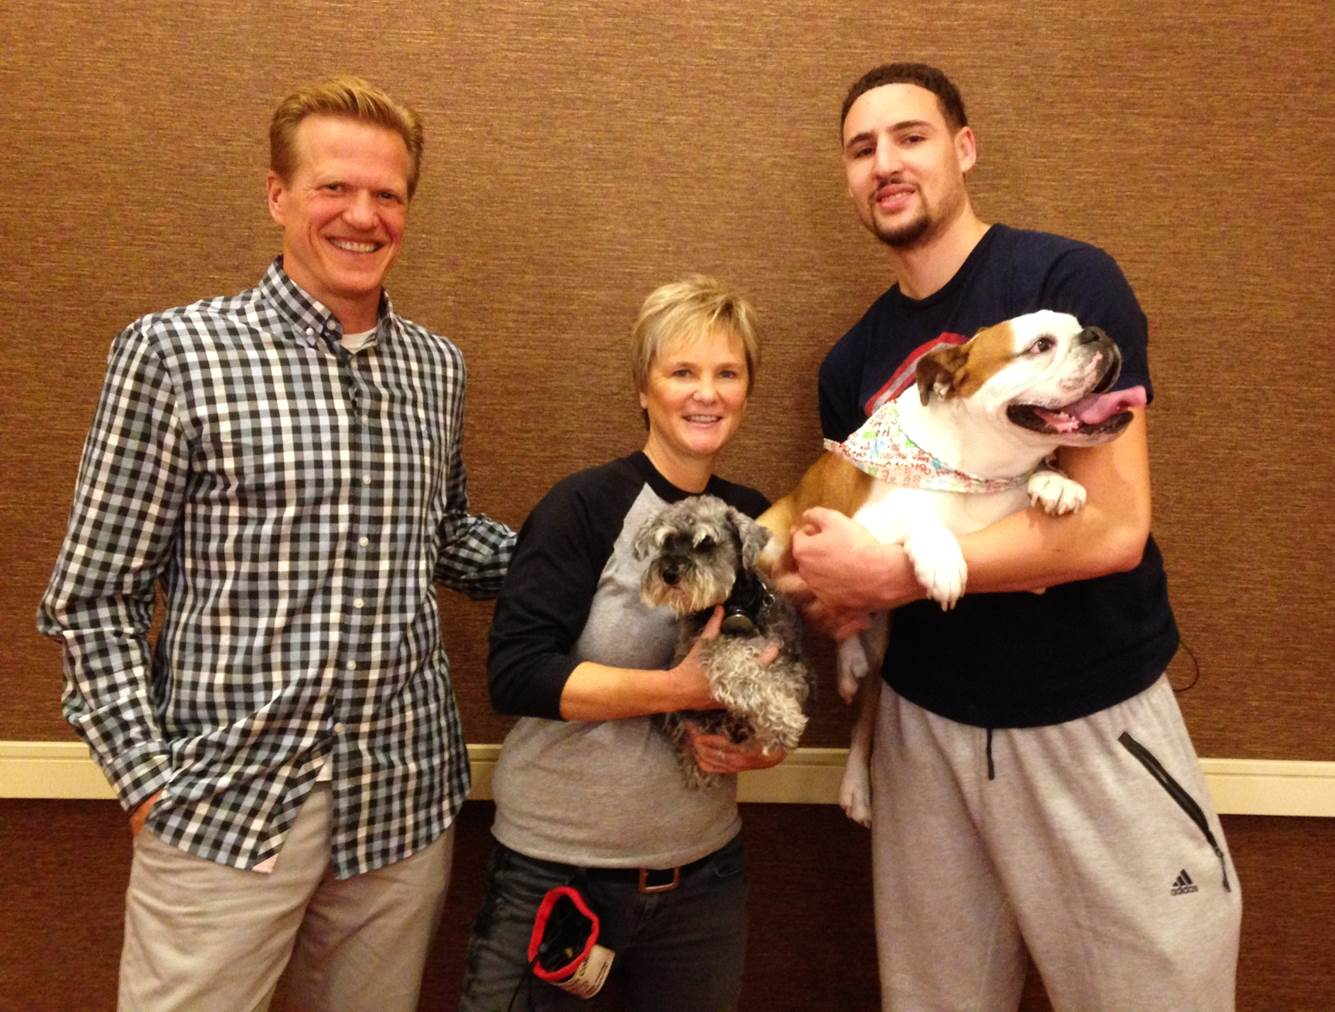 Klay Thompson dog training shoot with Ric Bucher